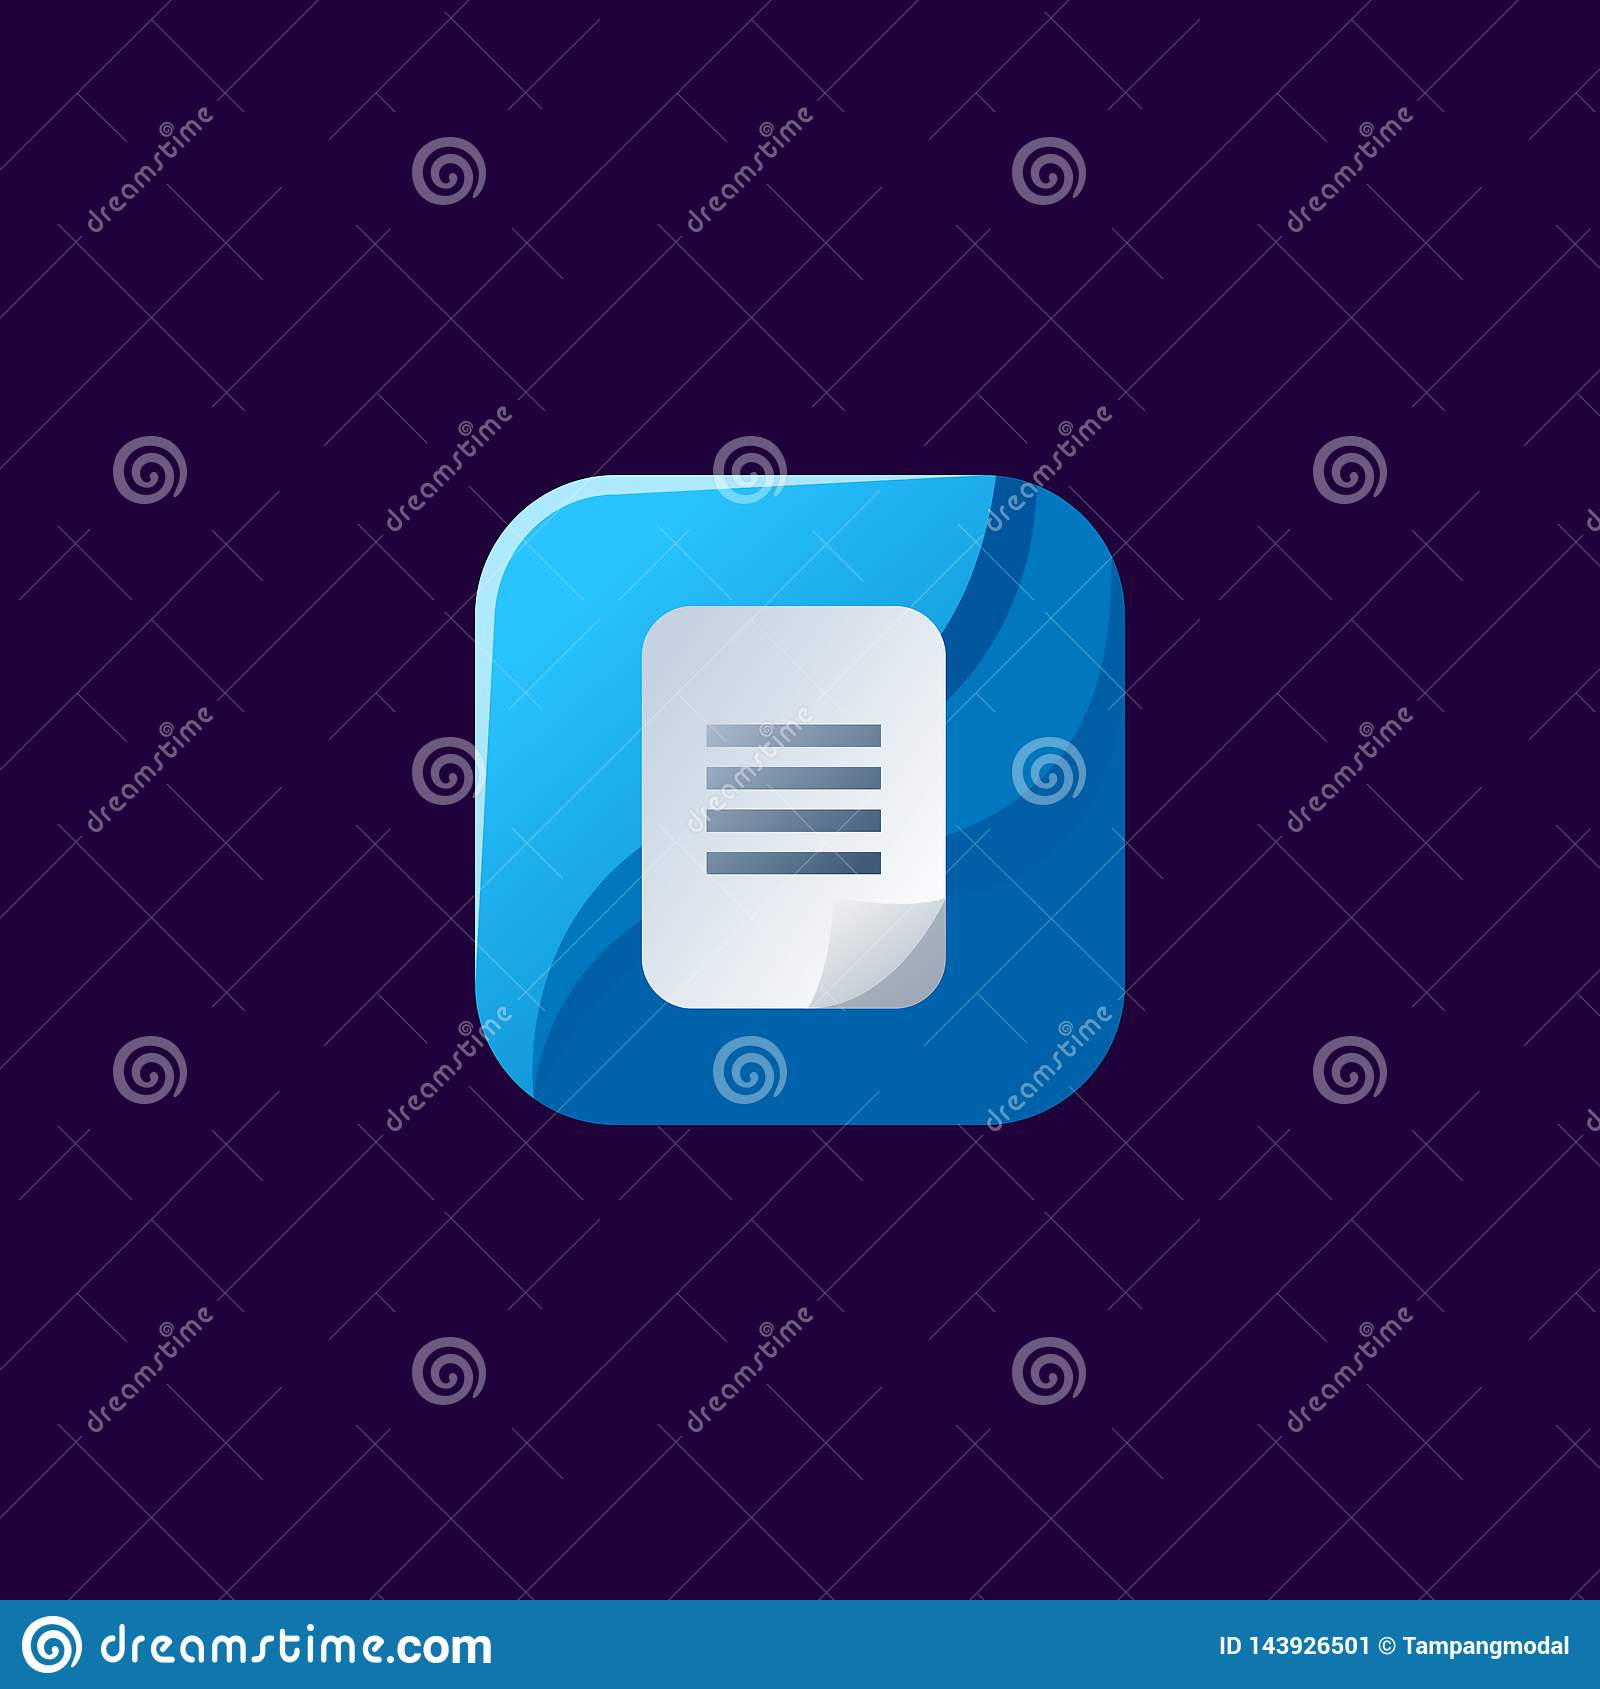 Awesome list icon design ready to use